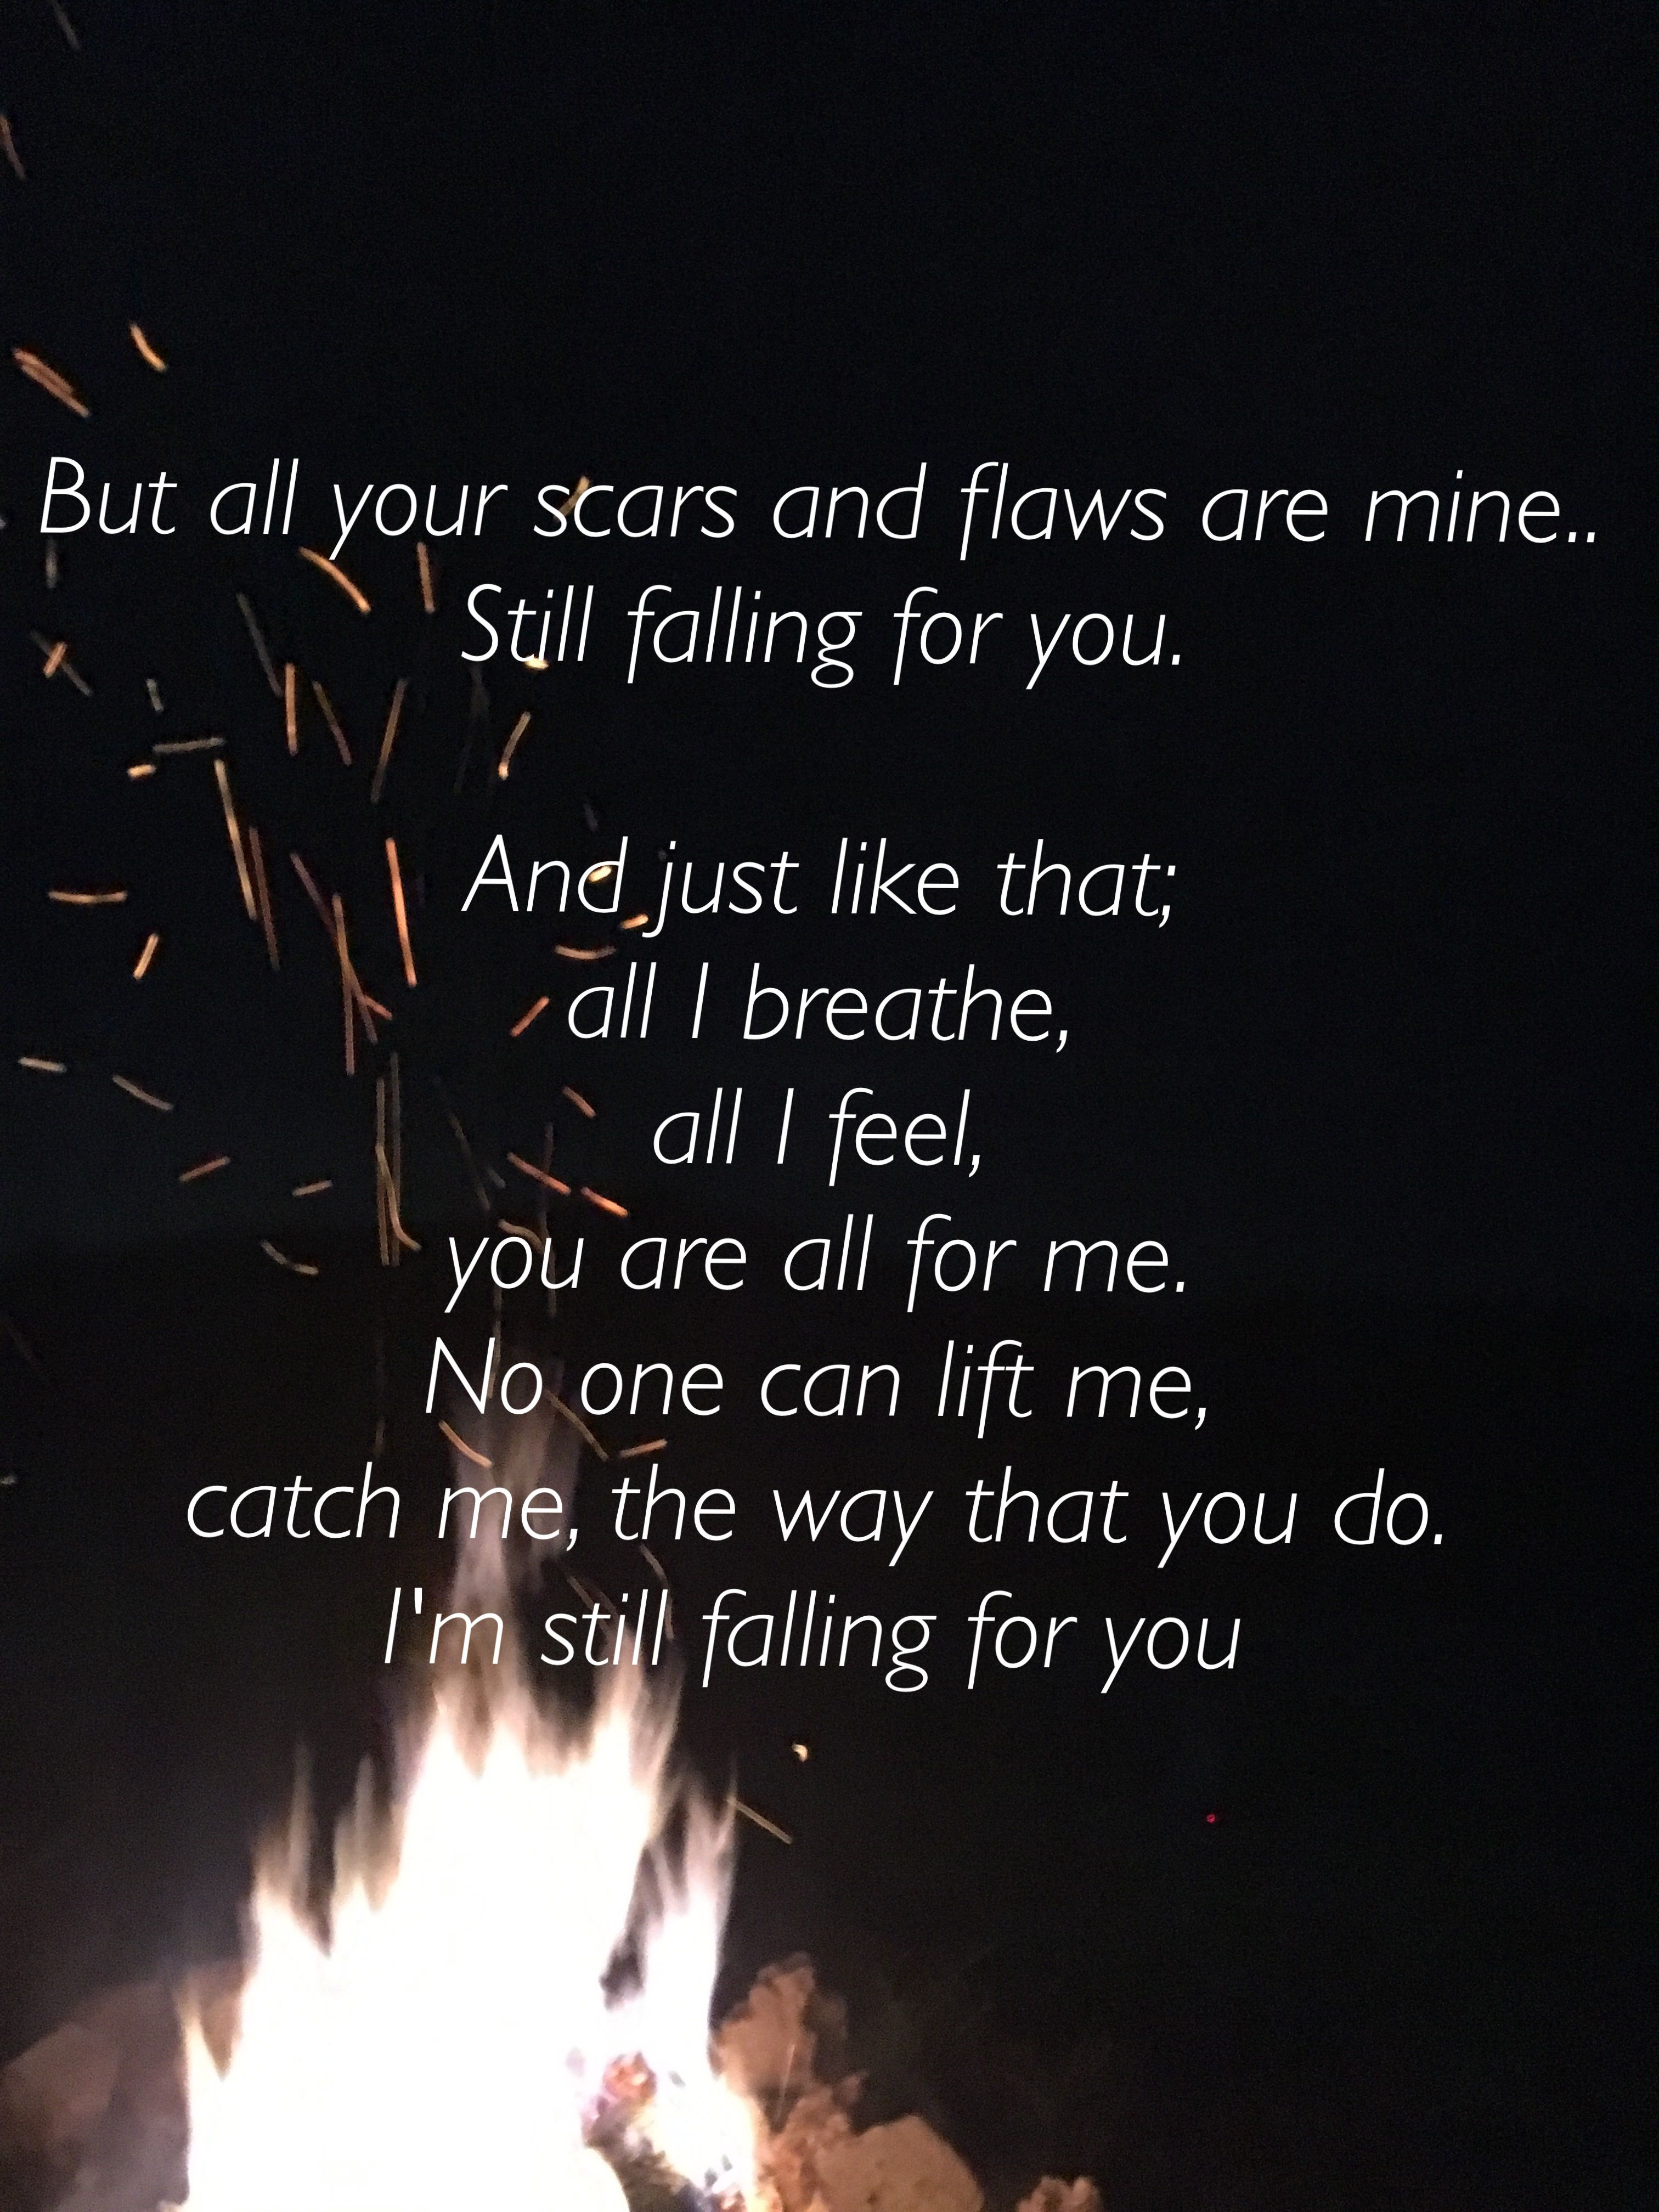 Four Love Songs Ellie Goulding Lyrics